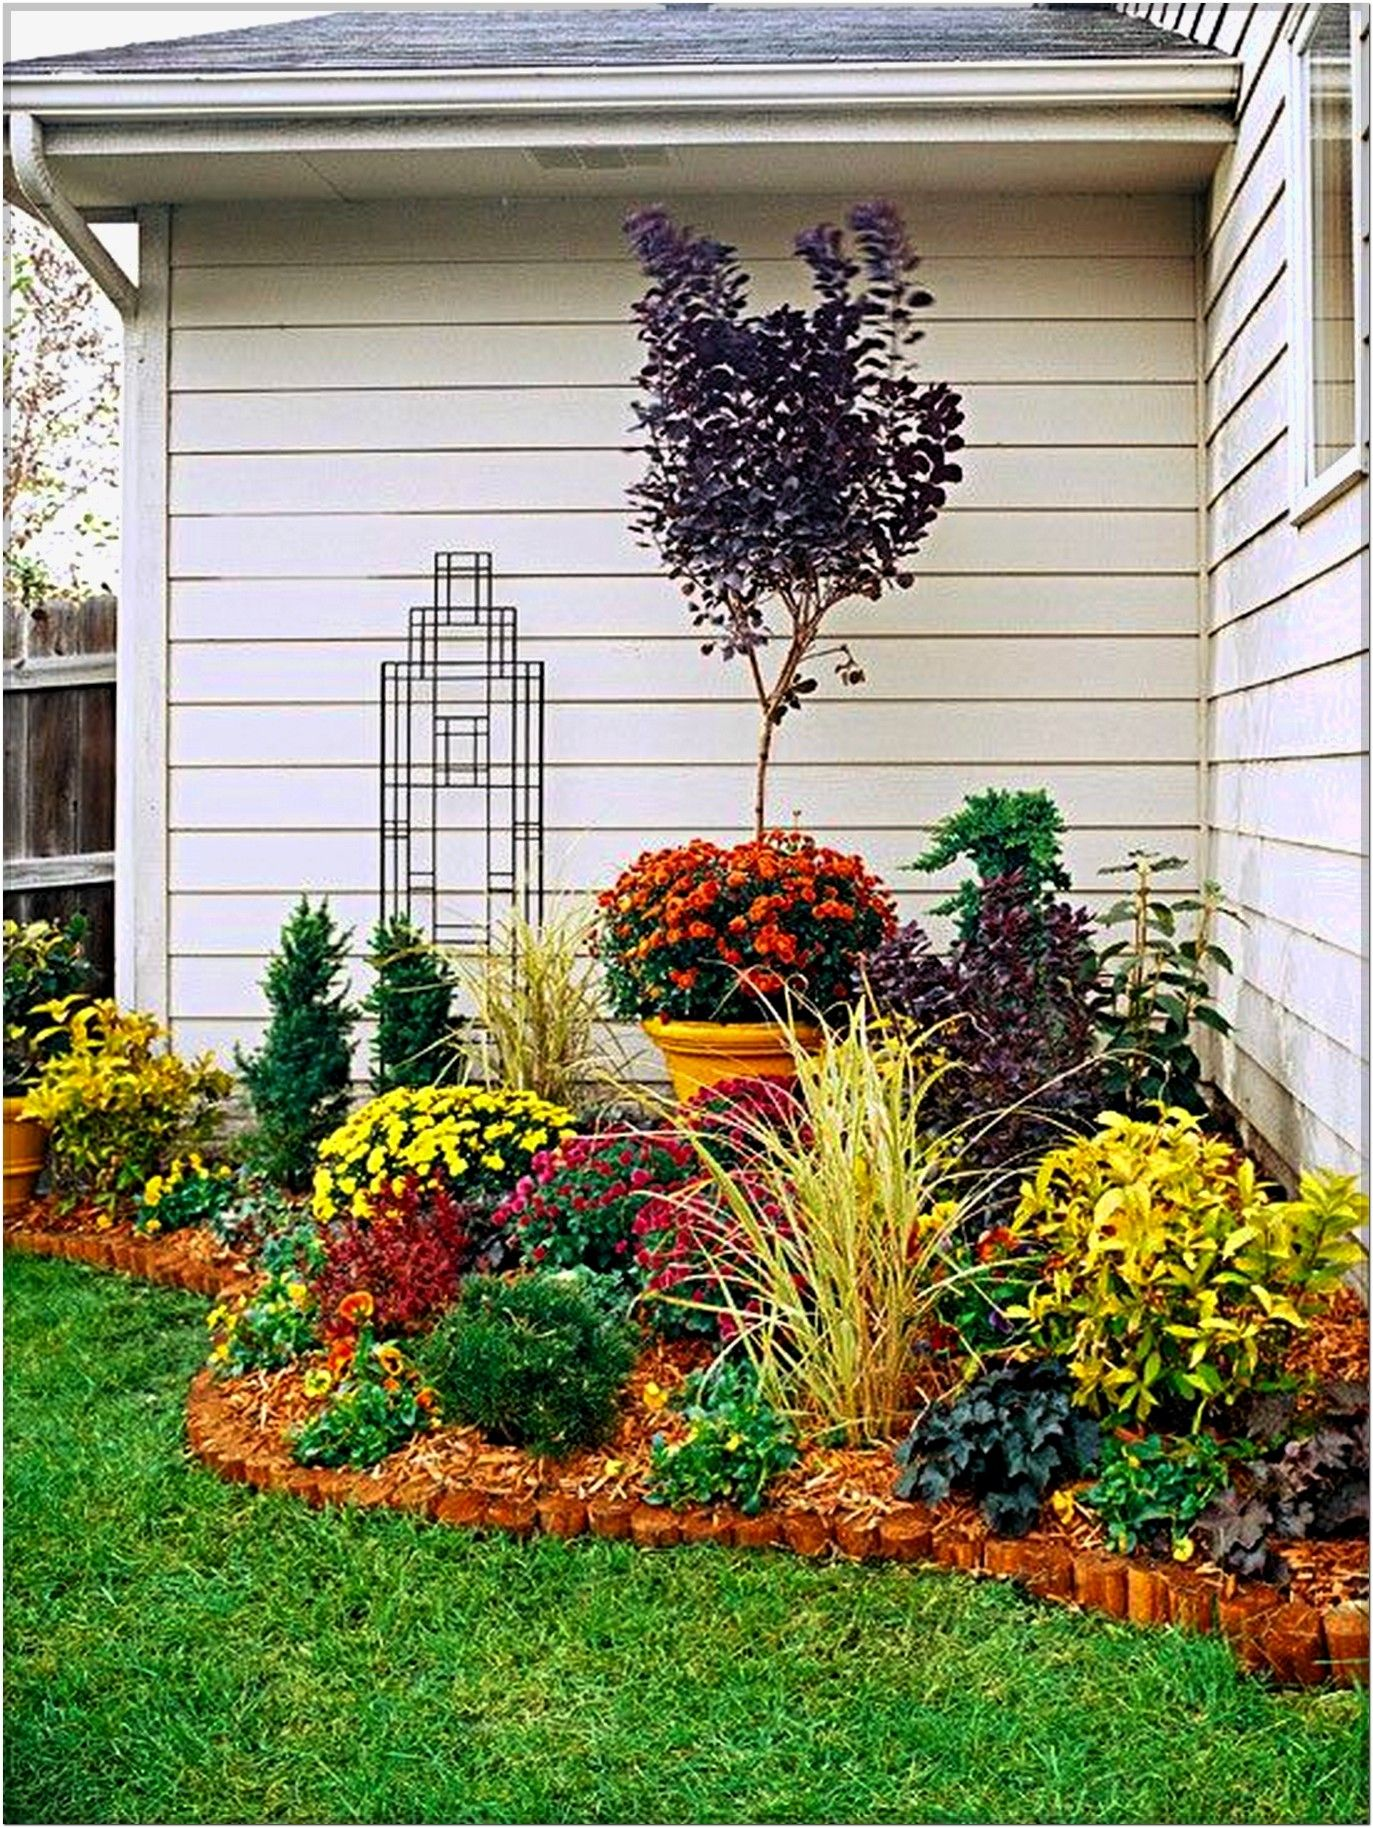 Flower Garden Ideas For Small Yards 10-ways to create a pretty lawnthe everyday home / www